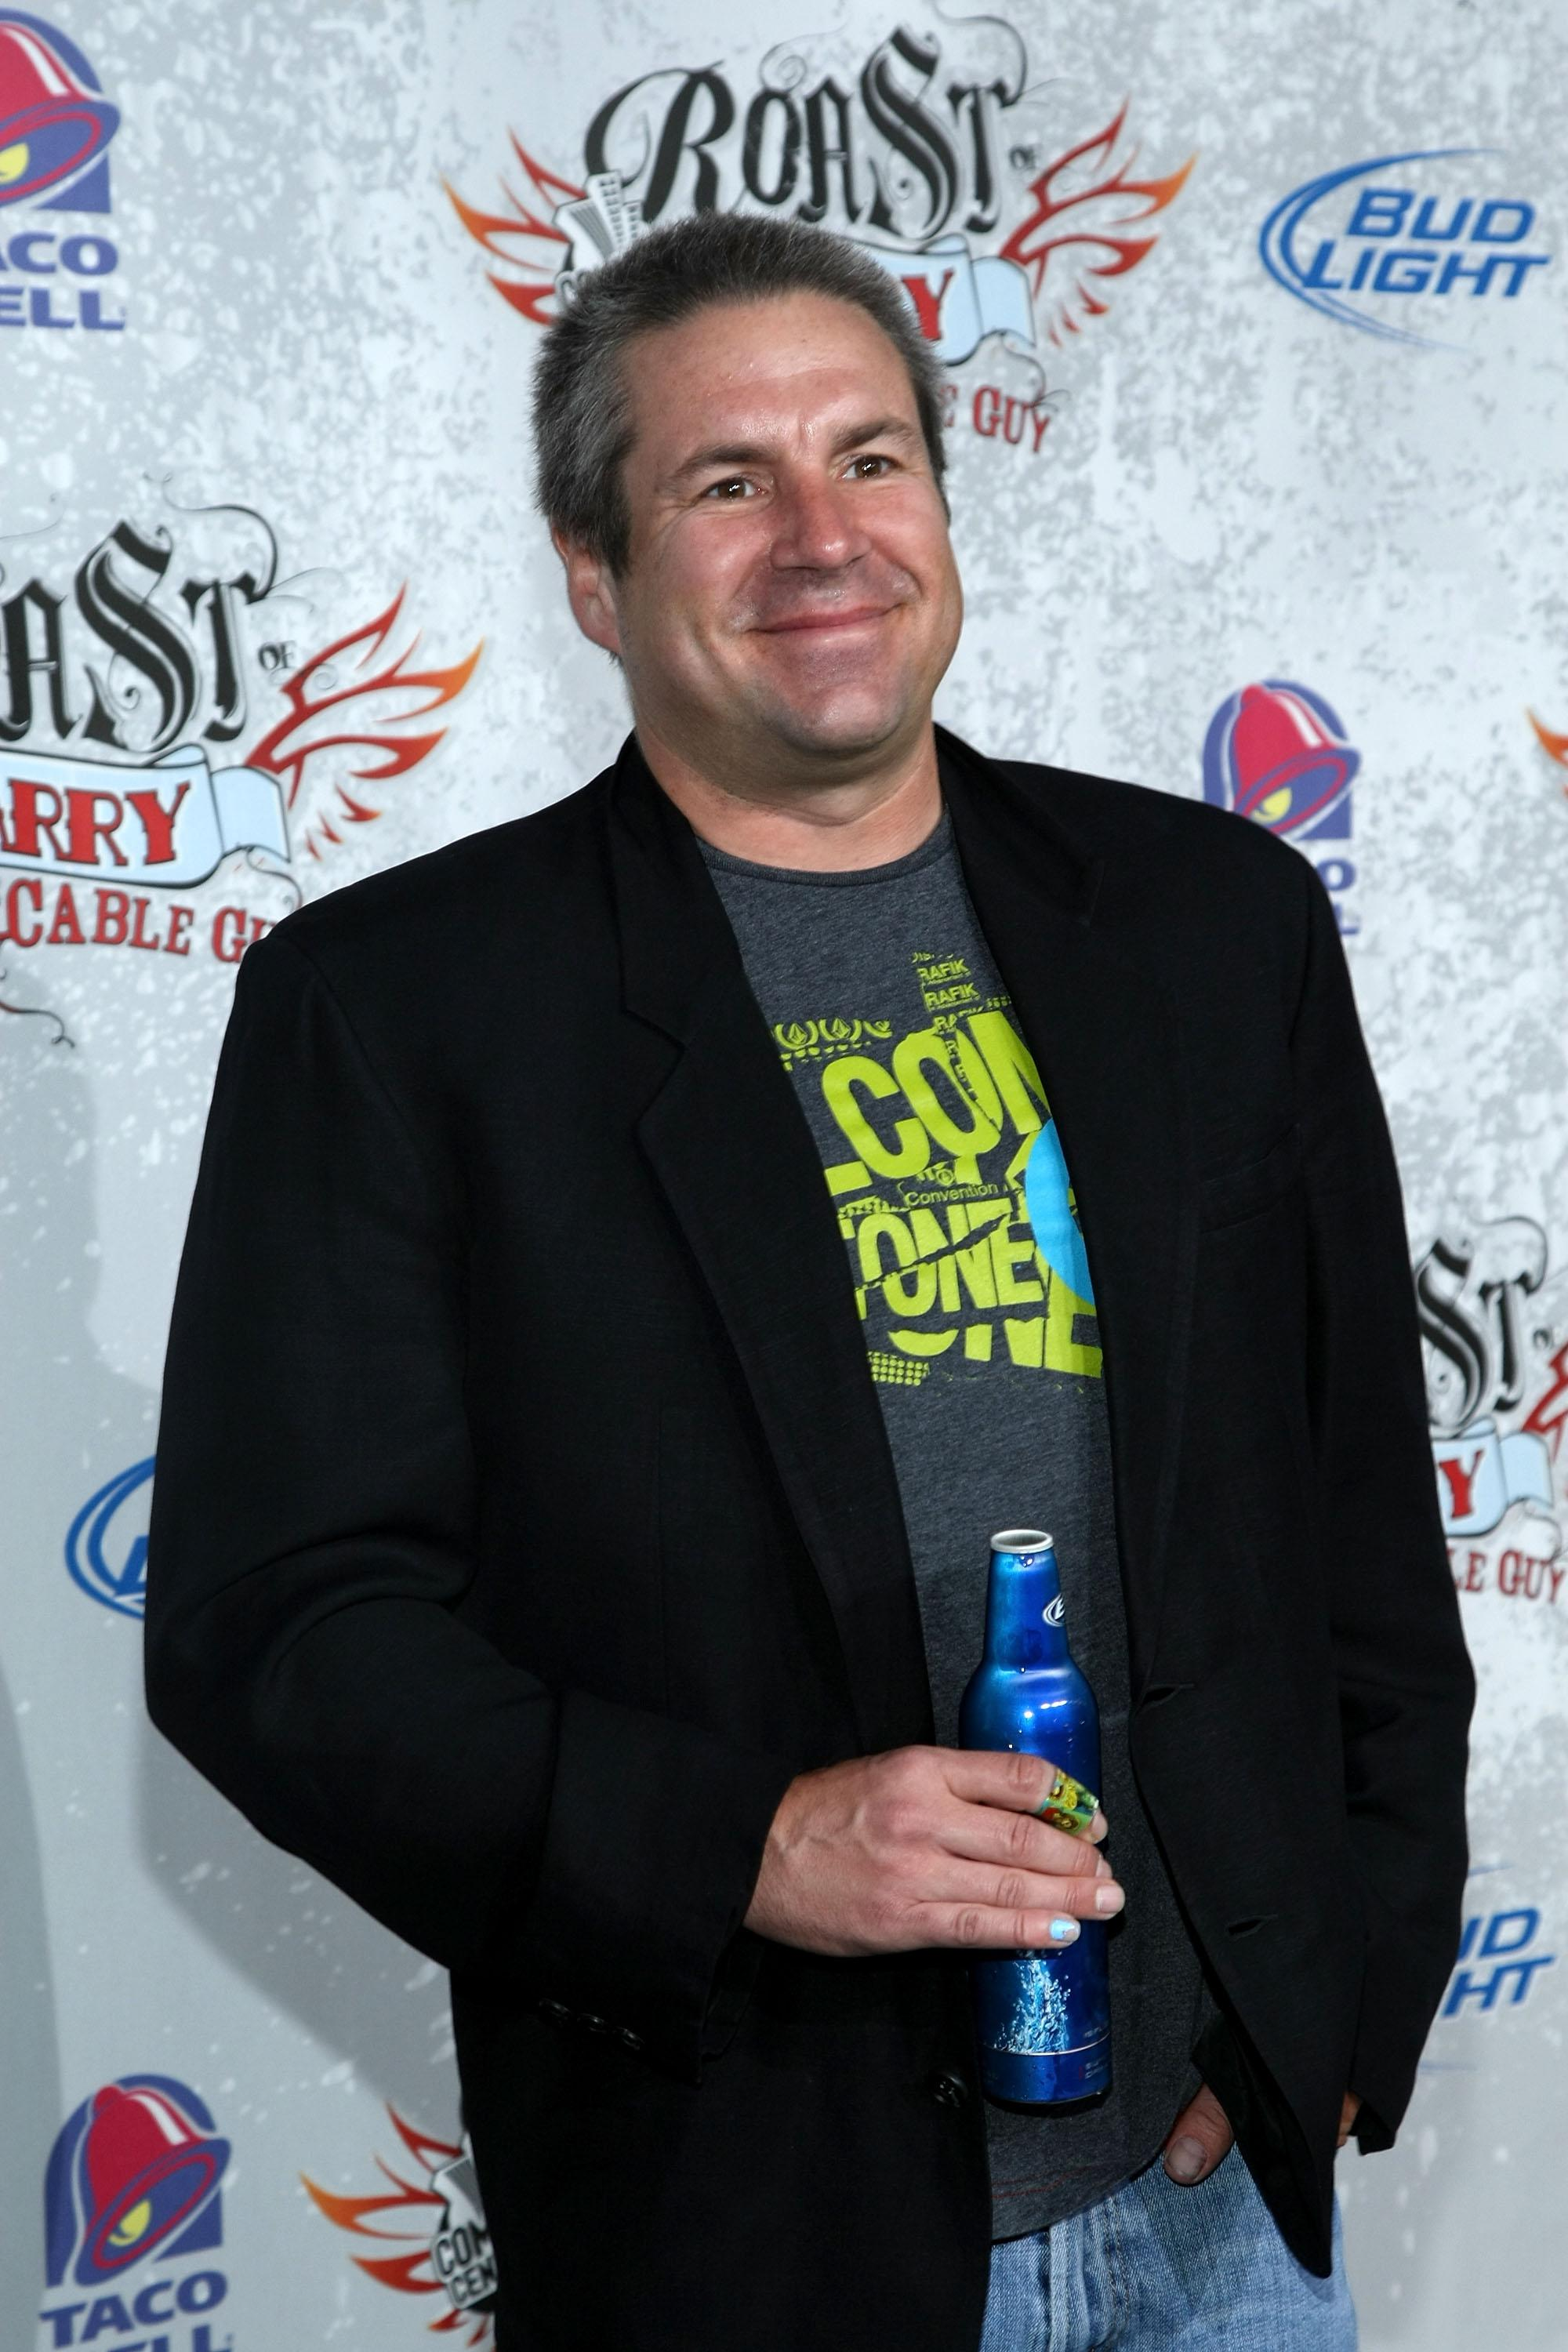 John Melendez arrives for the Comedy Central Roast Of Larry The Cable Guy at the Warner Brother Studio Lot on March 1, 2009 in Burbank.